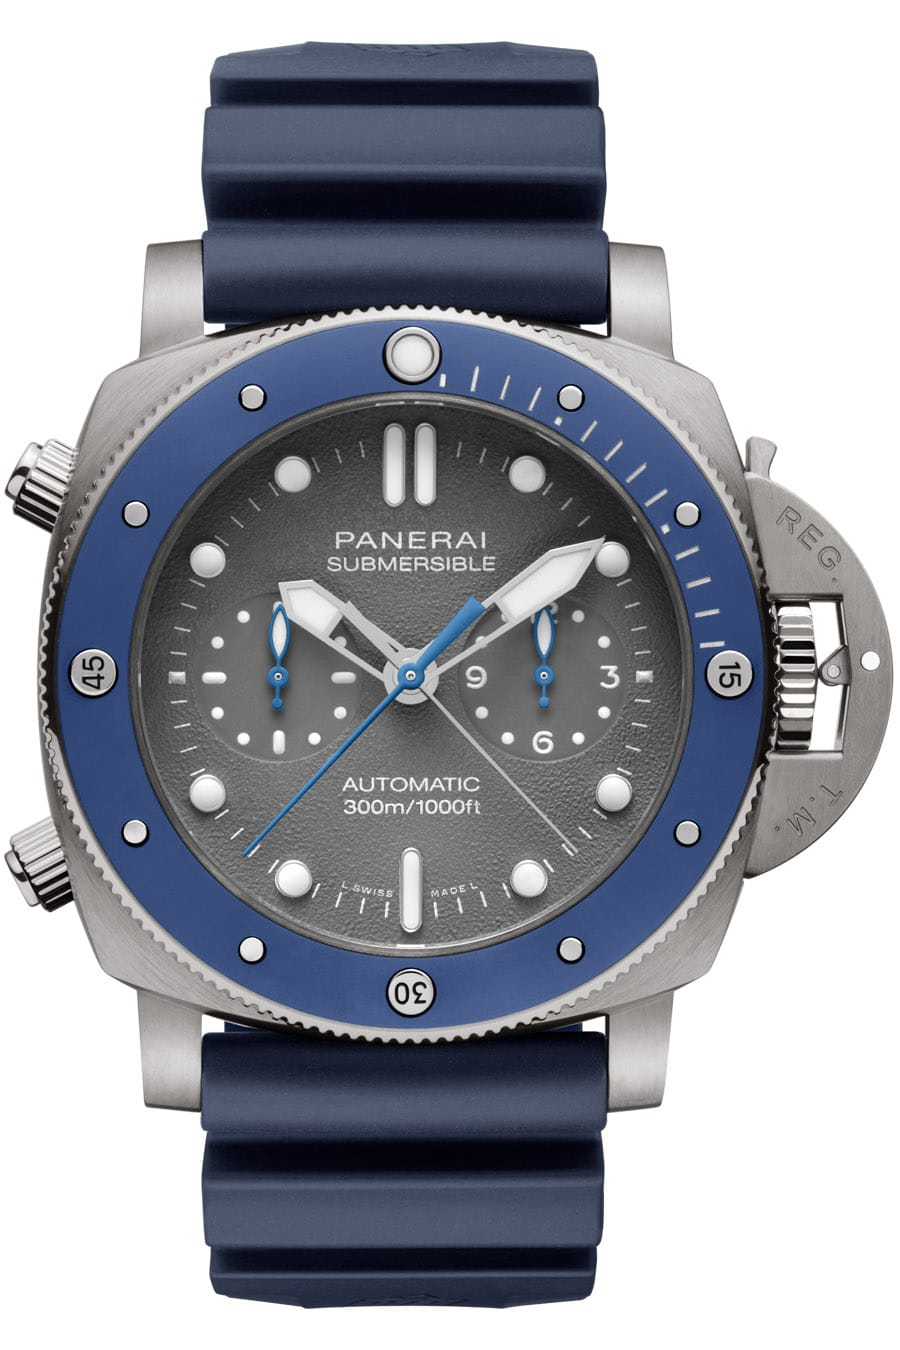 Panerai Submersible Chrono Guillaume Néry Edition – PAM00982